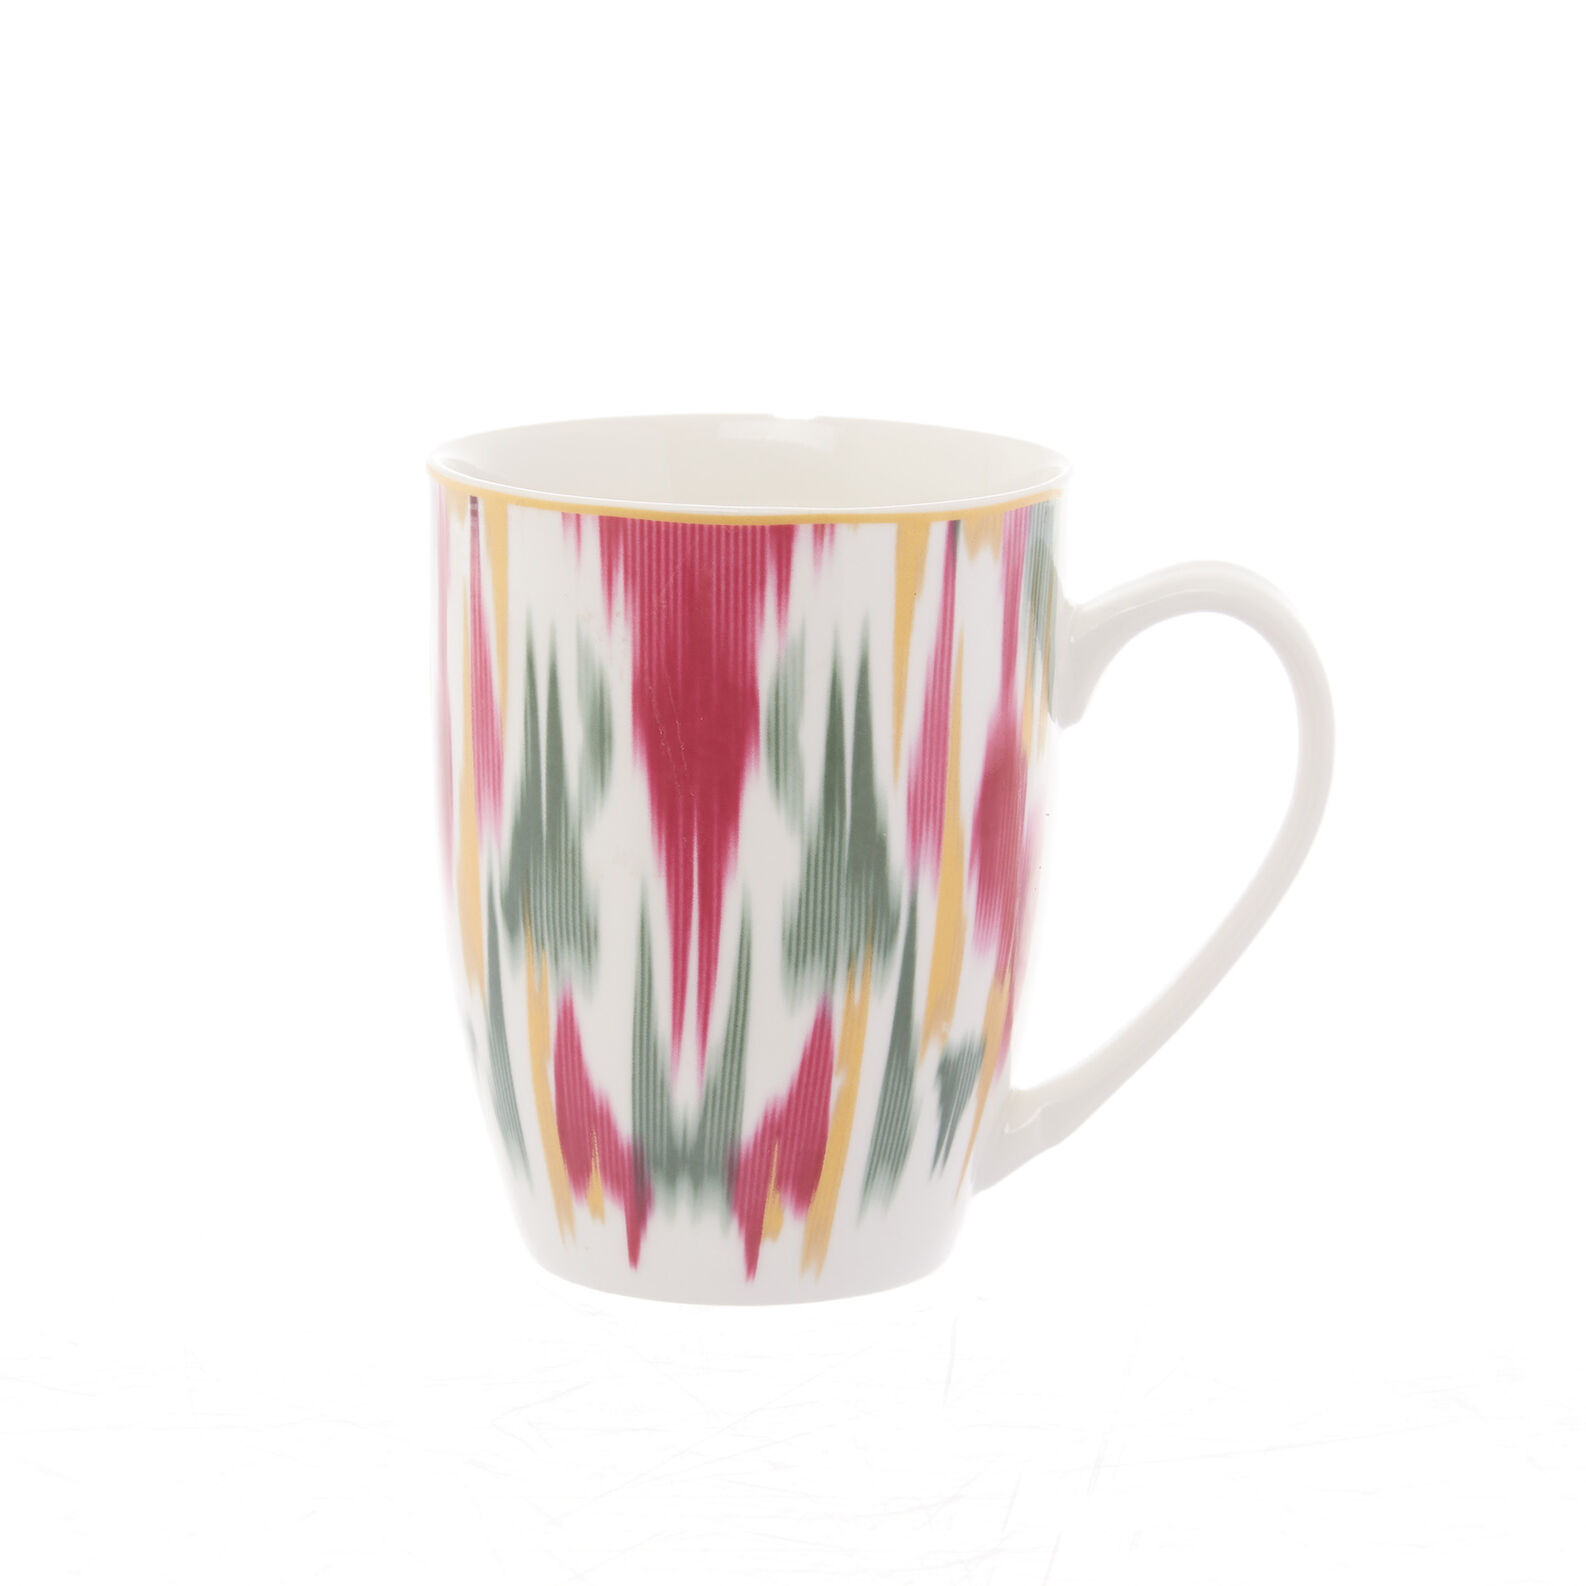 Mug new bone china motivo ikat